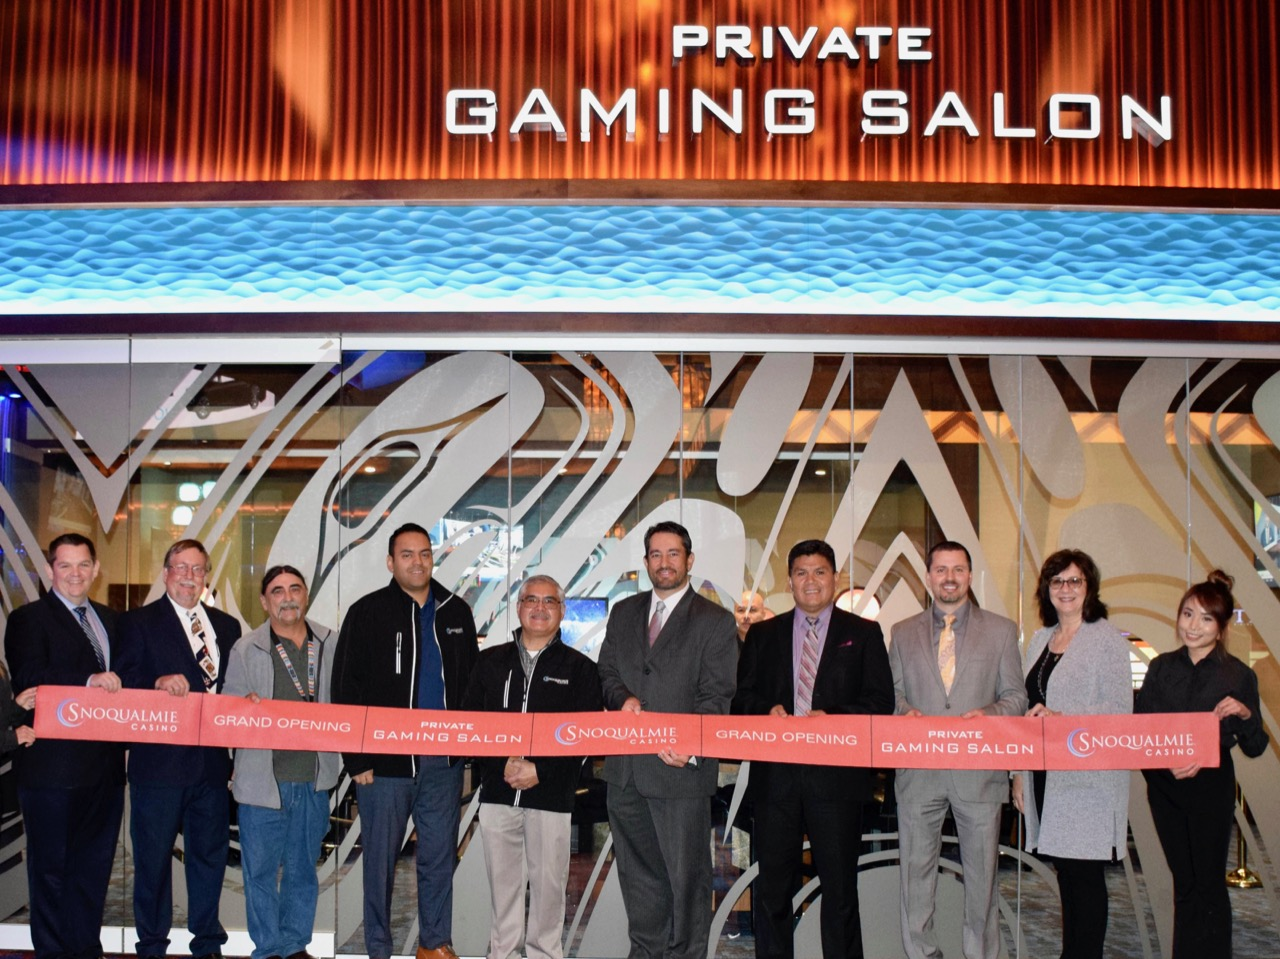 Snoqualmie Tribe opens private gaming room on 10th anniversary